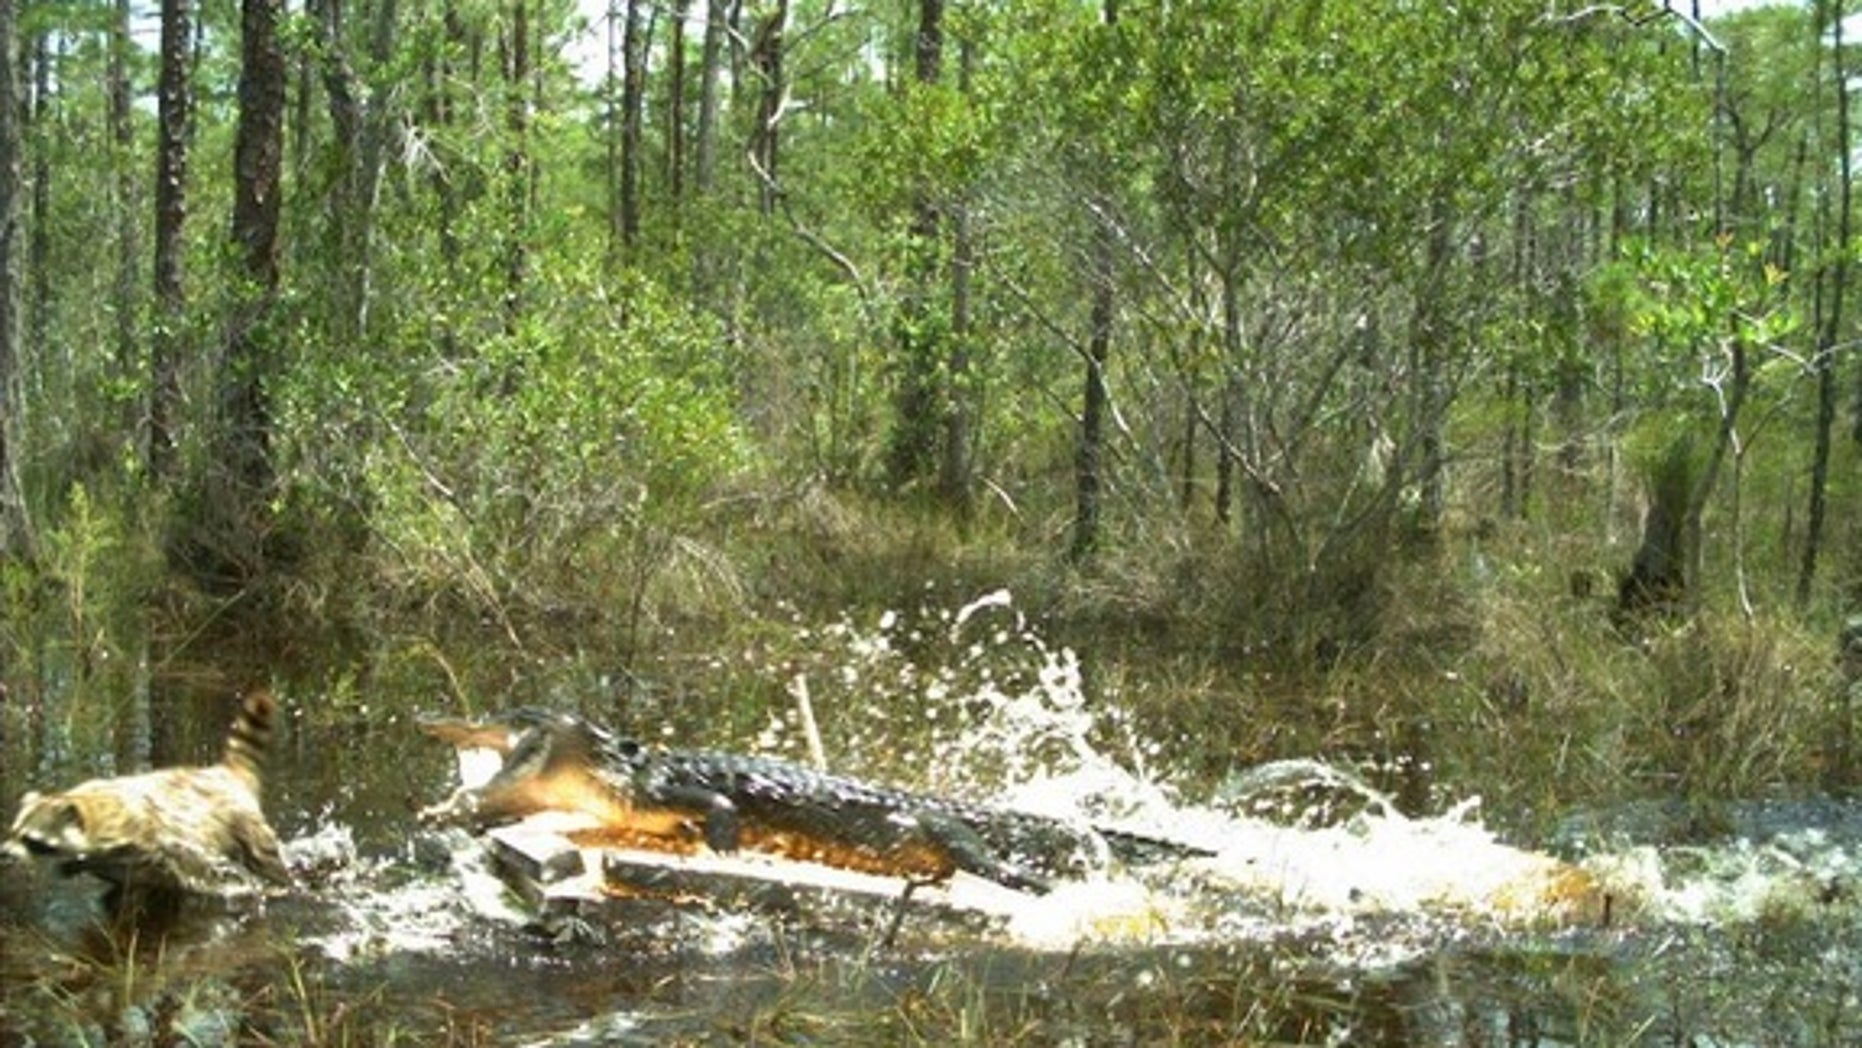 An alligator attacking a raccoon in the Florida Everglades.